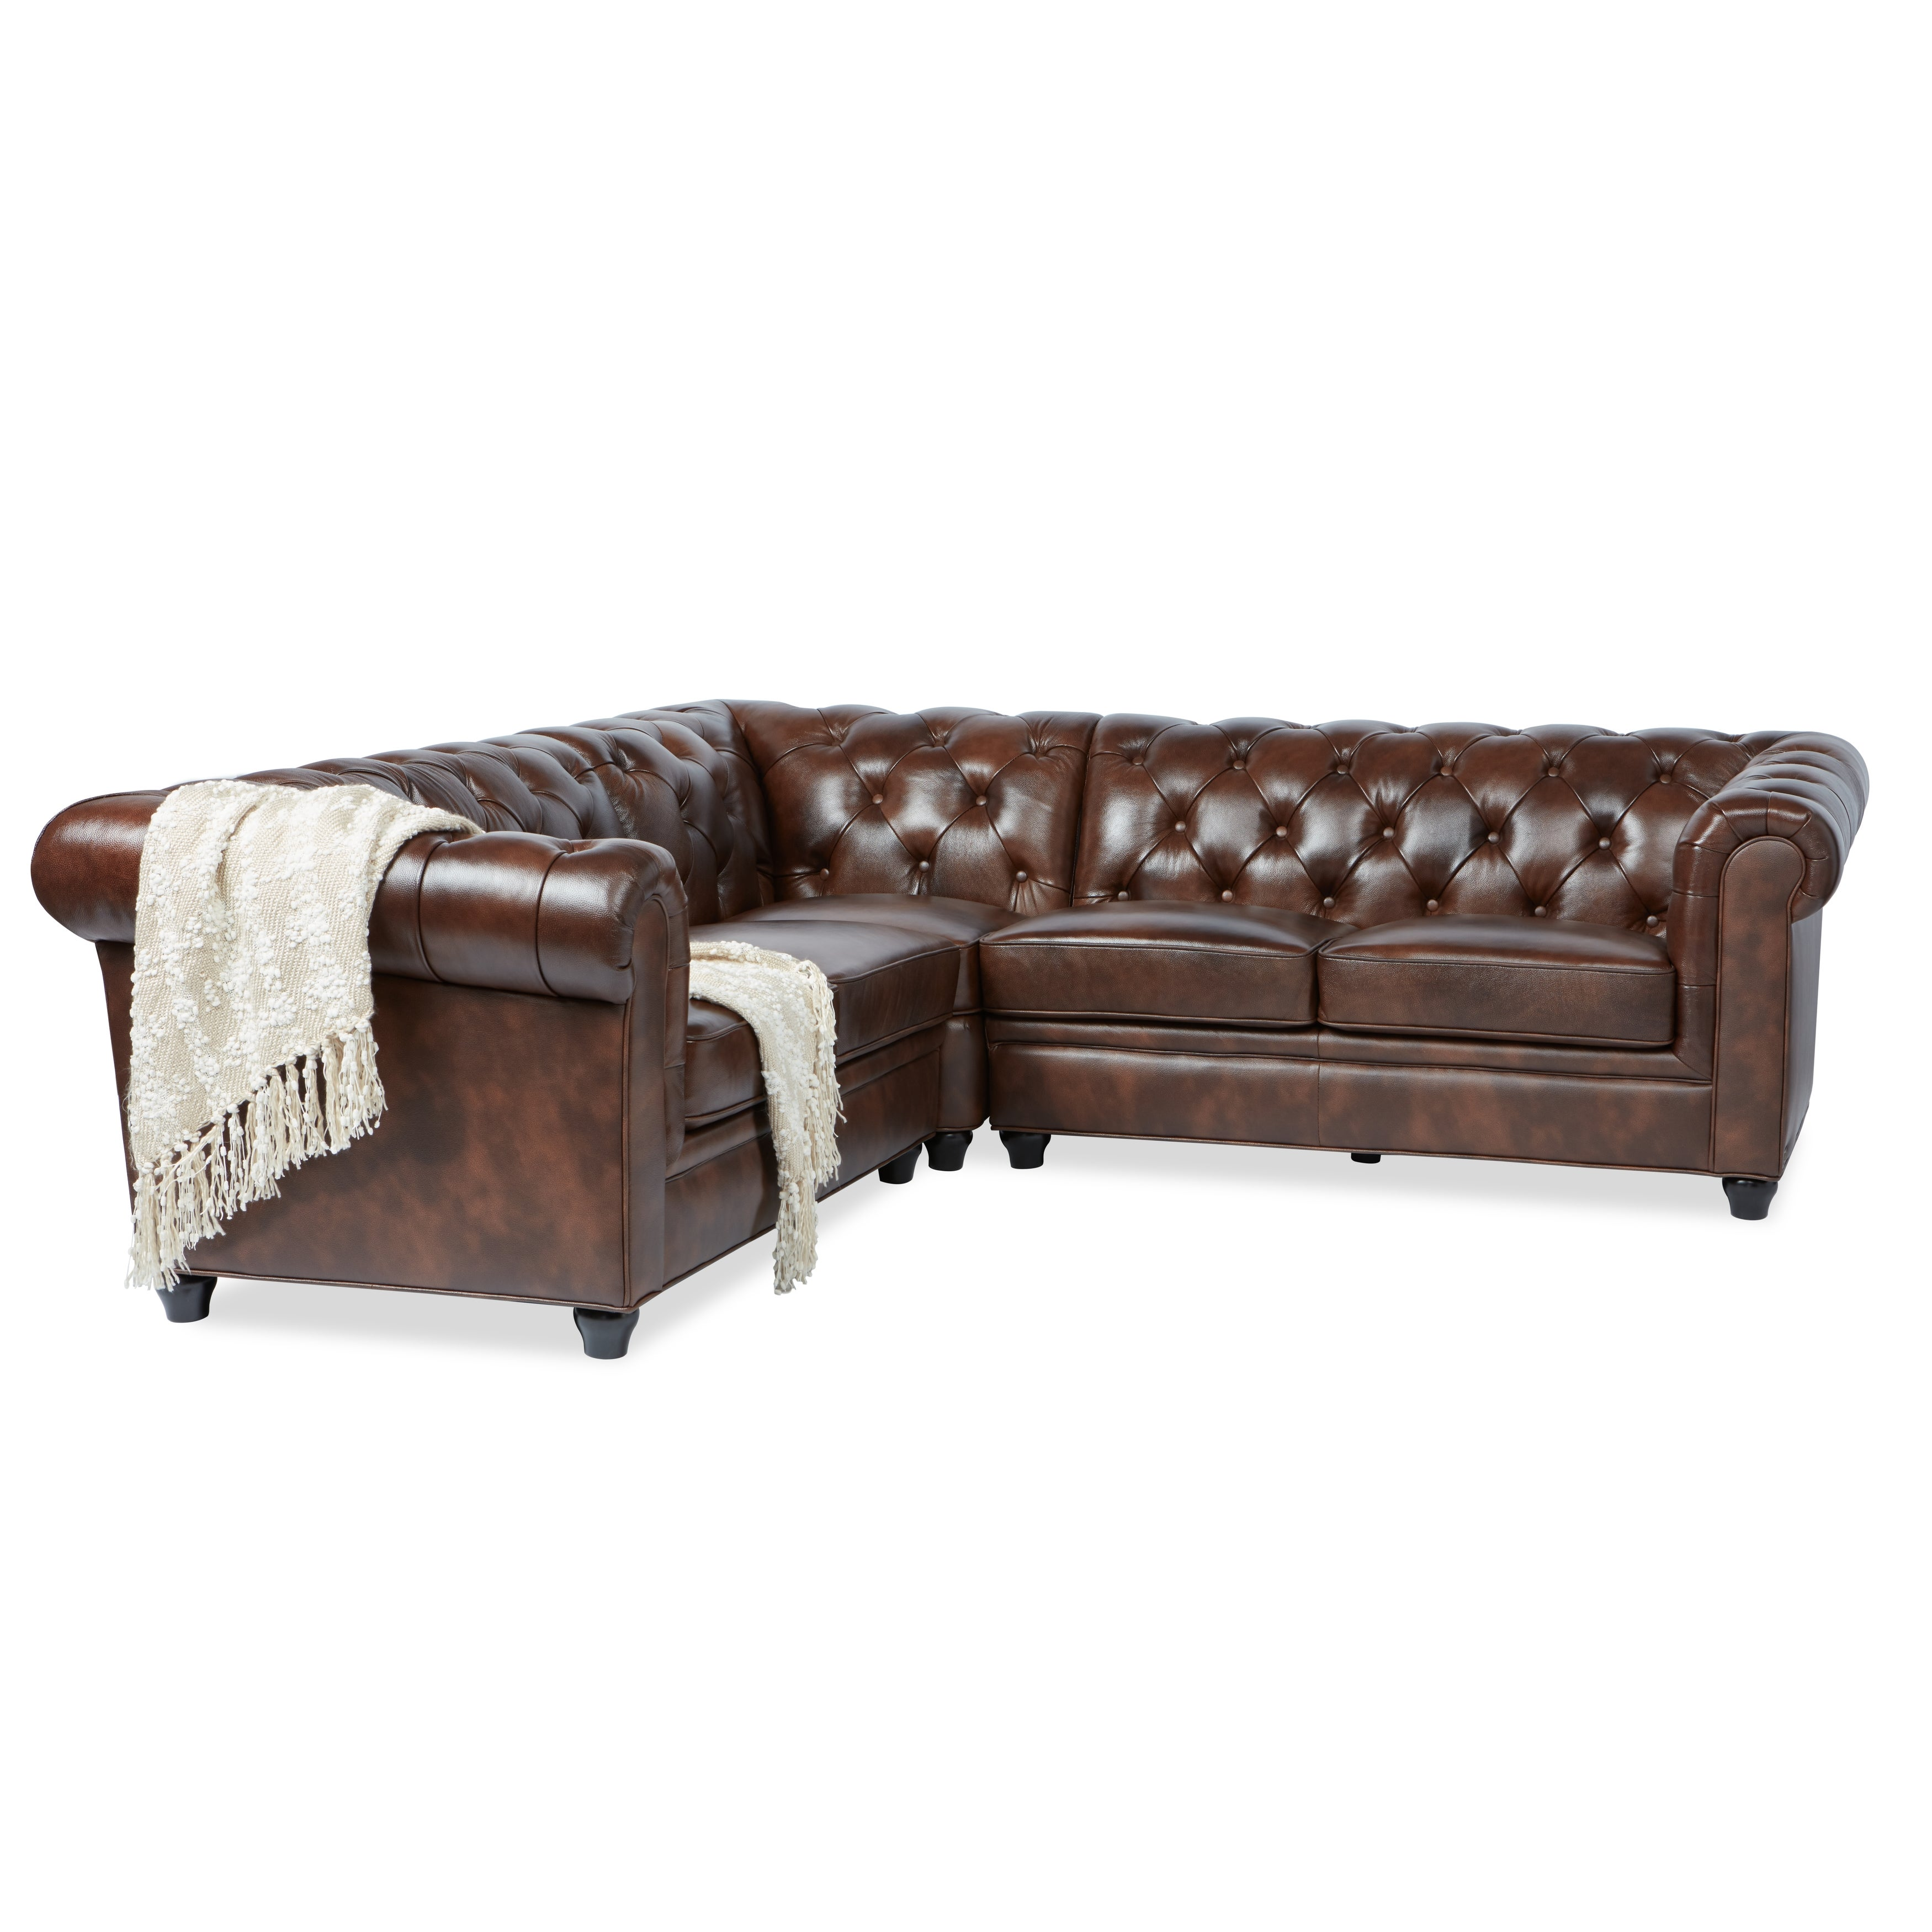 Shop Abbyson Tuscan Tufted Top Grain Leather Piece Sectional Sofa On Sale  Free Shipping Today Jpg